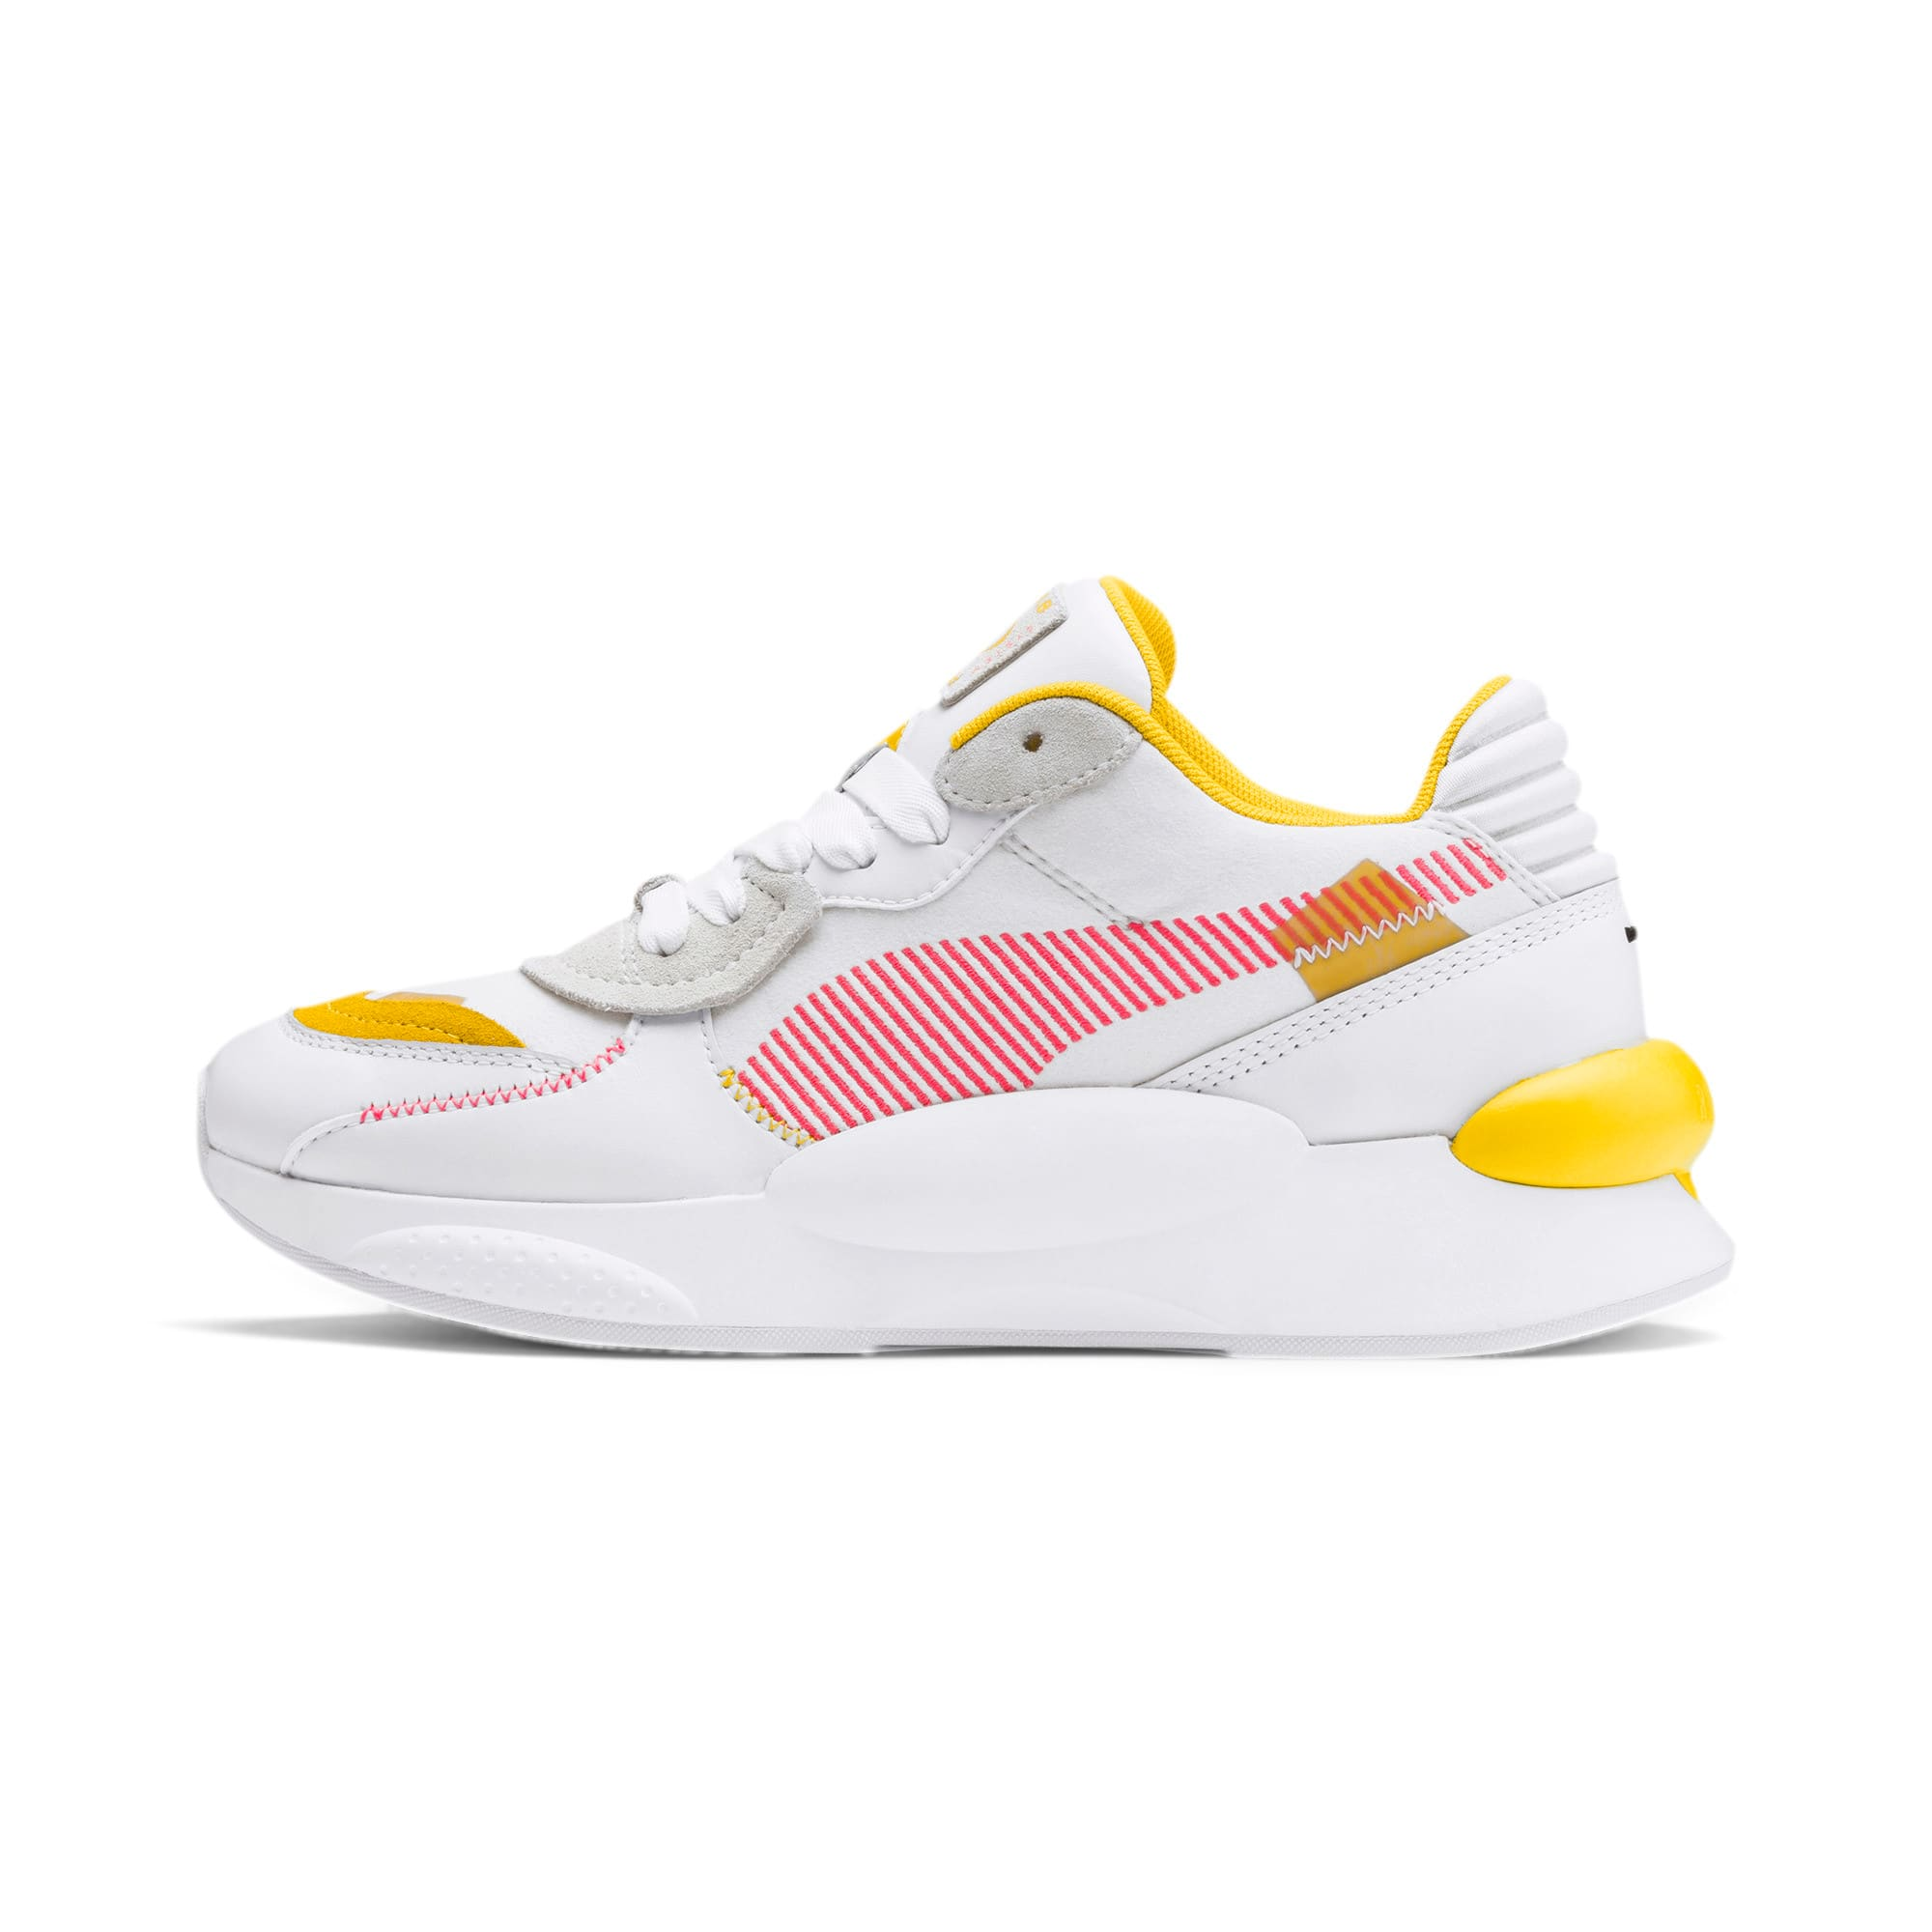 Thumbnail 1 of RS 9.8 Proto Women's Sneakers, Puma White, medium